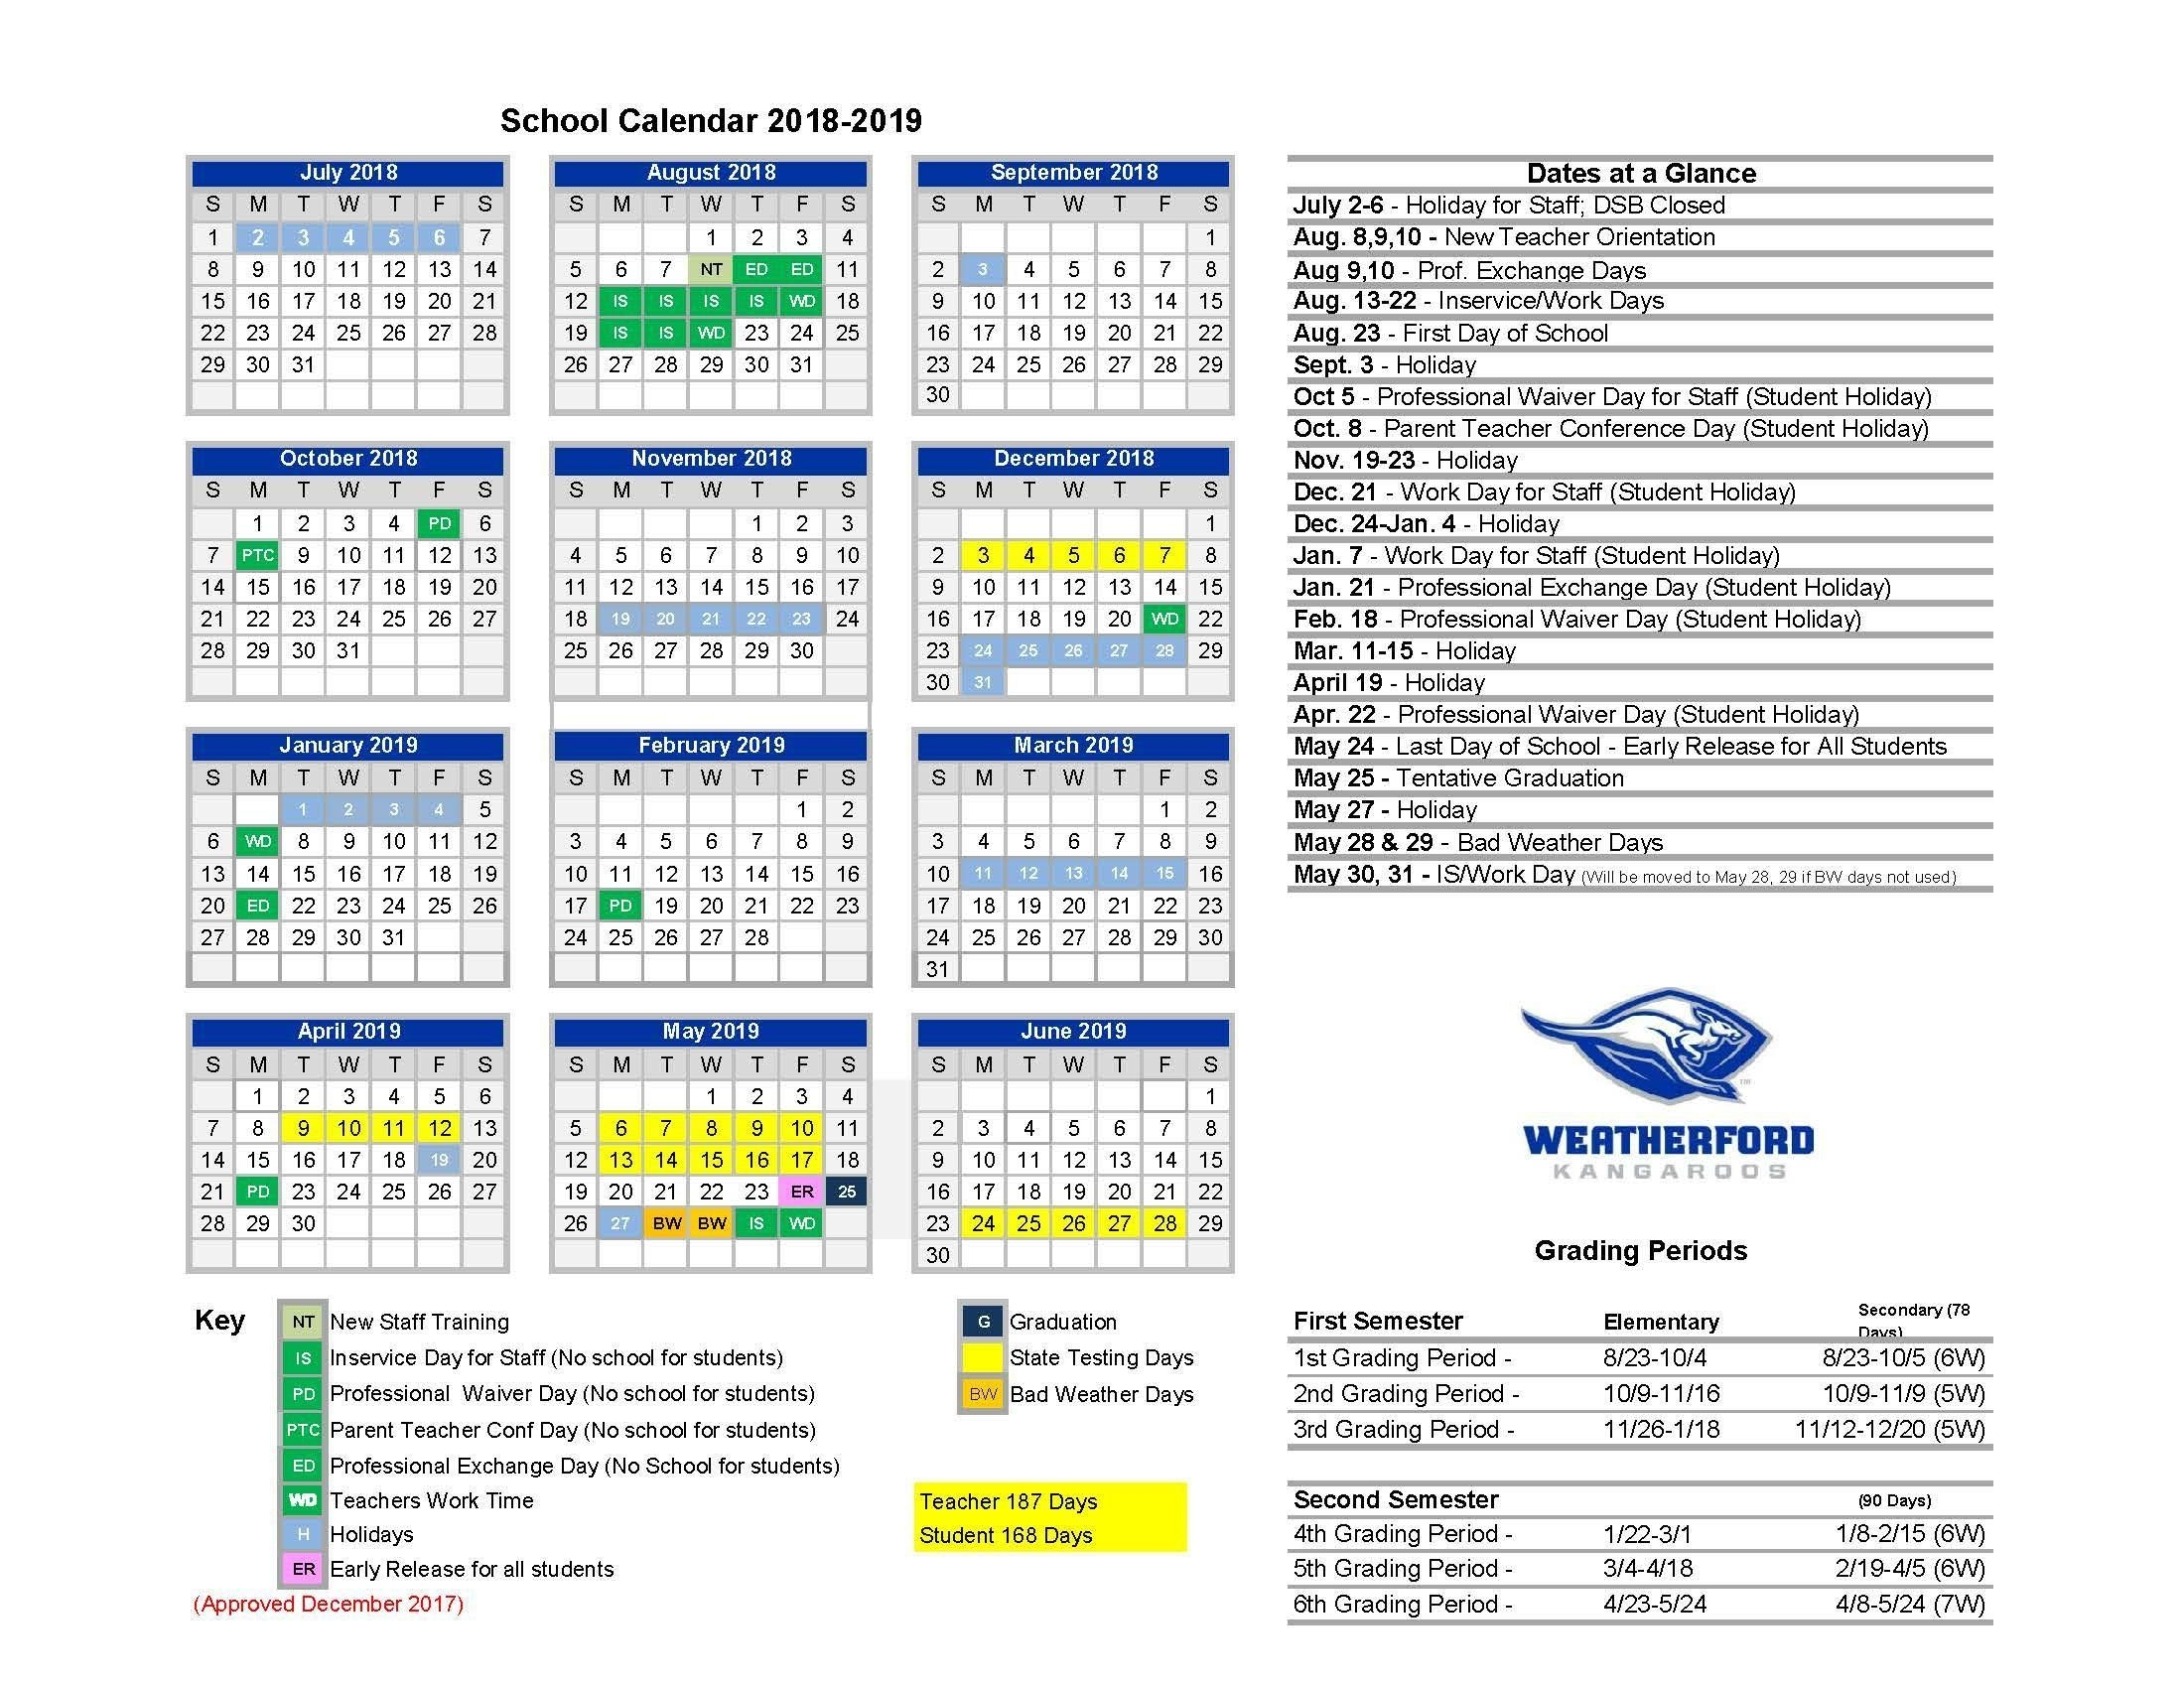 Home – Calendars – Weatherford Independent School District District 2 School Calendar